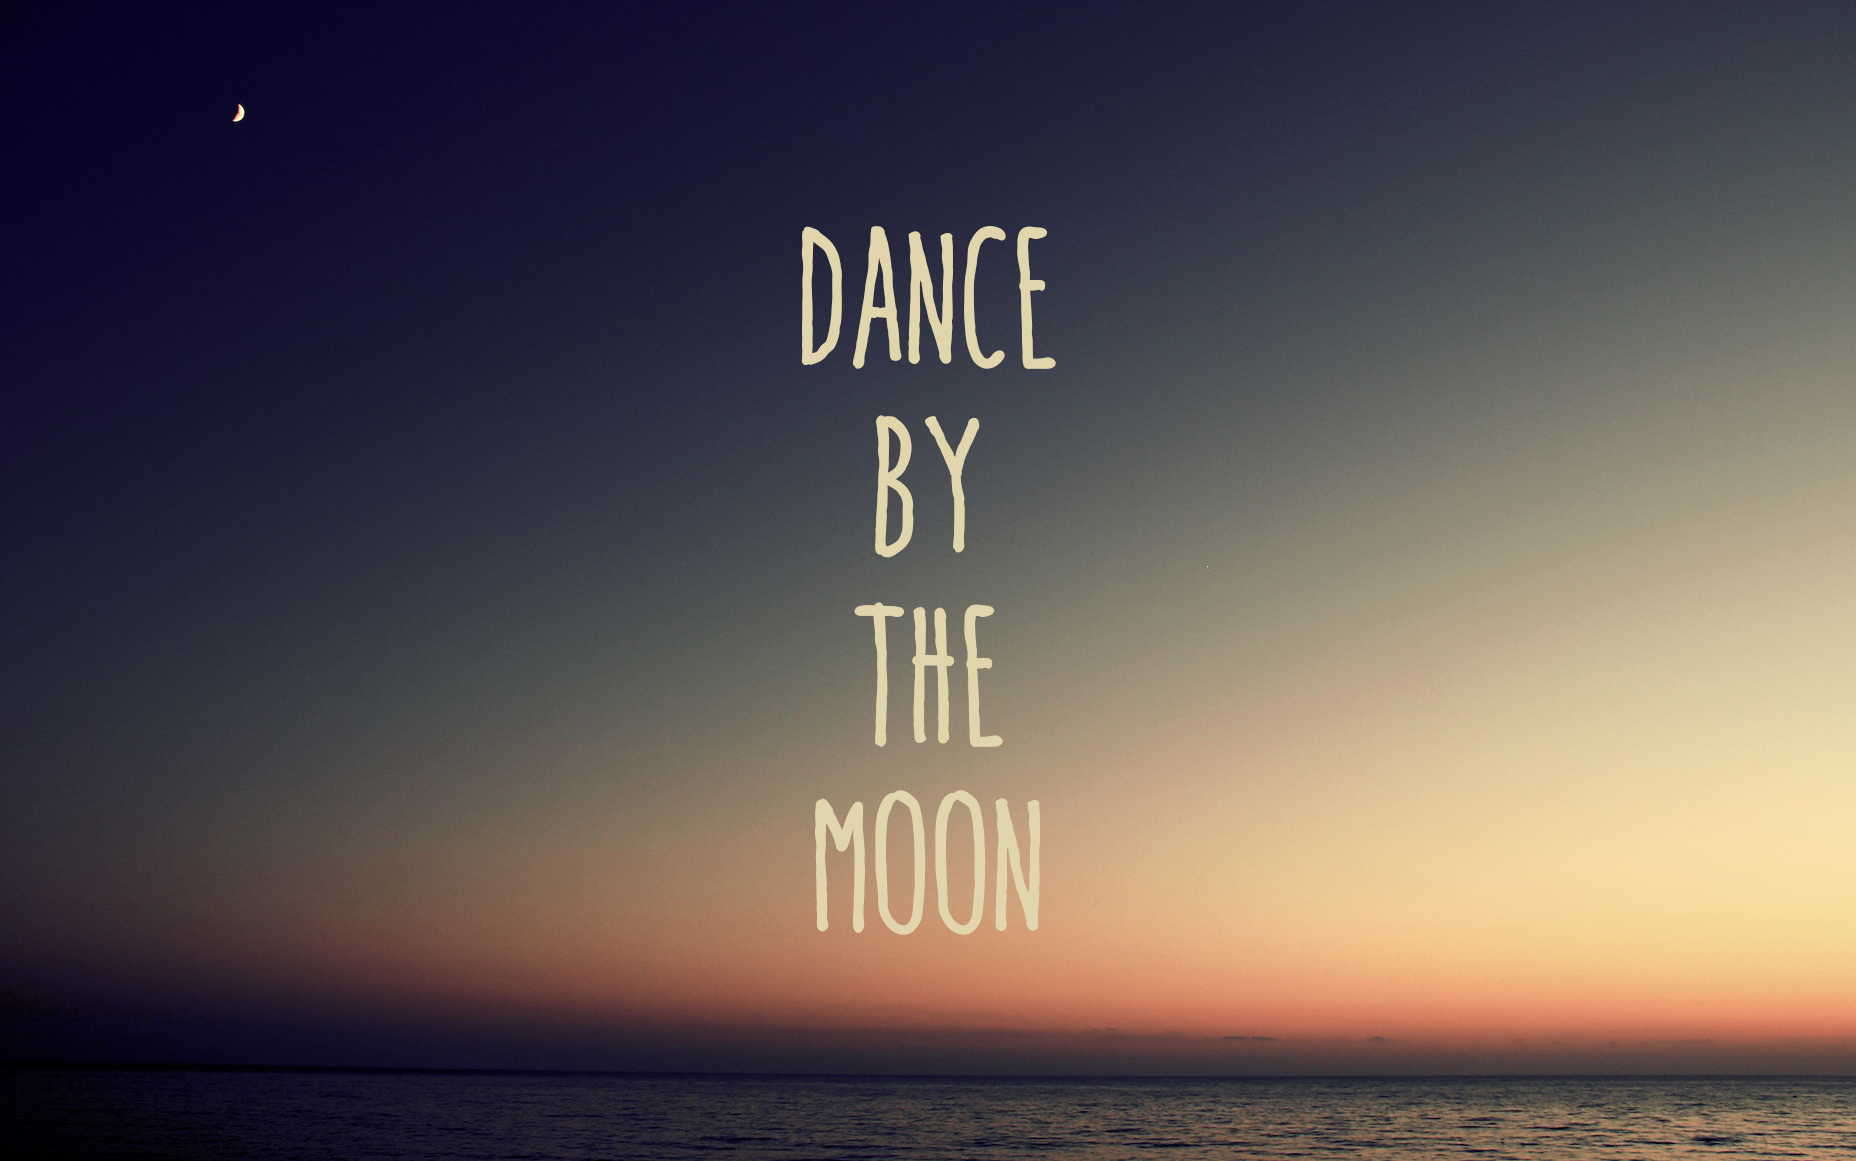 Dance Laptop Wallpapers: Made On Monday // Dance By The Moon